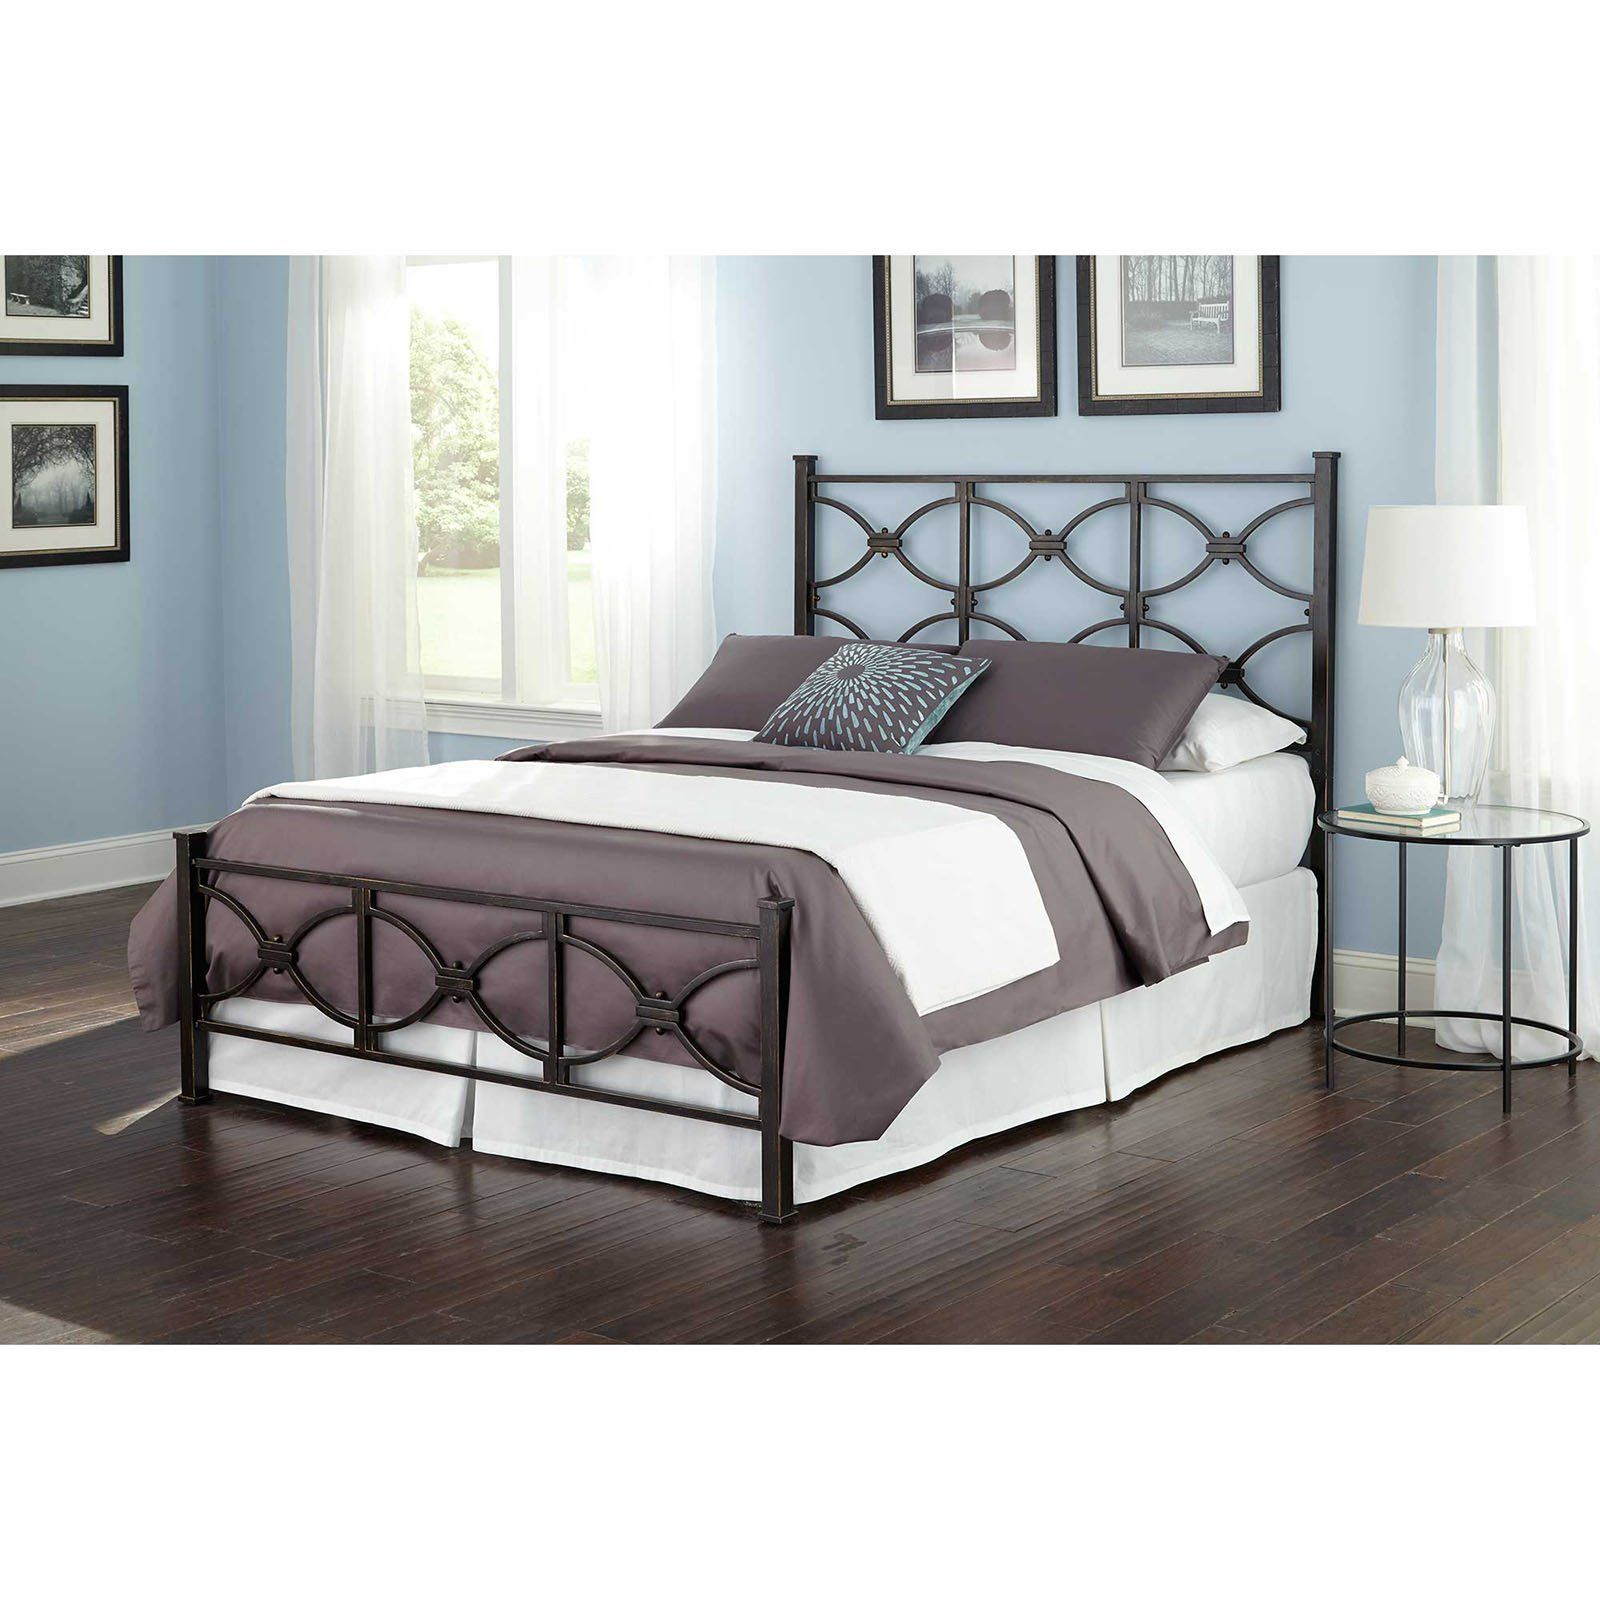 Fashion Bed Group Marlo Metal Bed | from hayneedle.com | New house ...